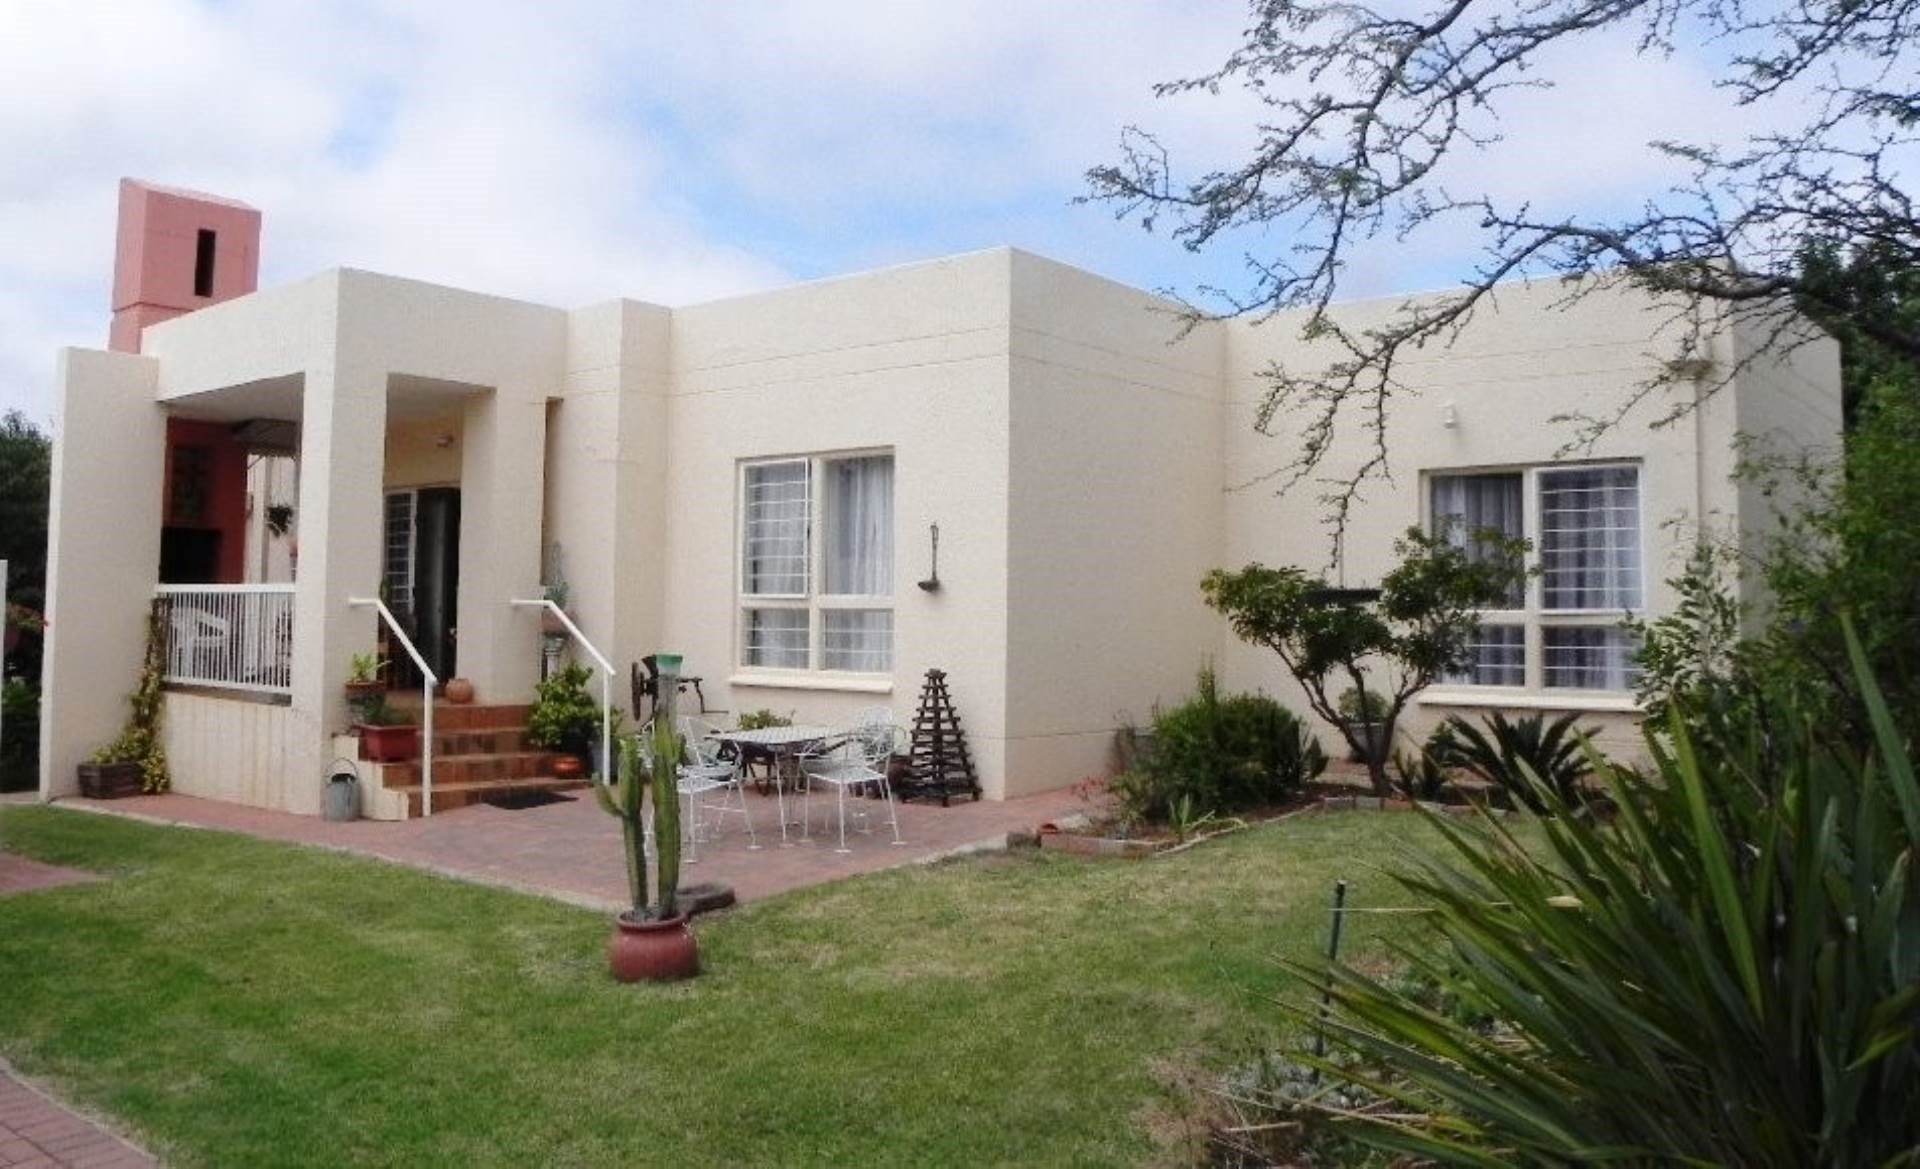 2 Bedroom Cluster for Sale in Rietvalleirand